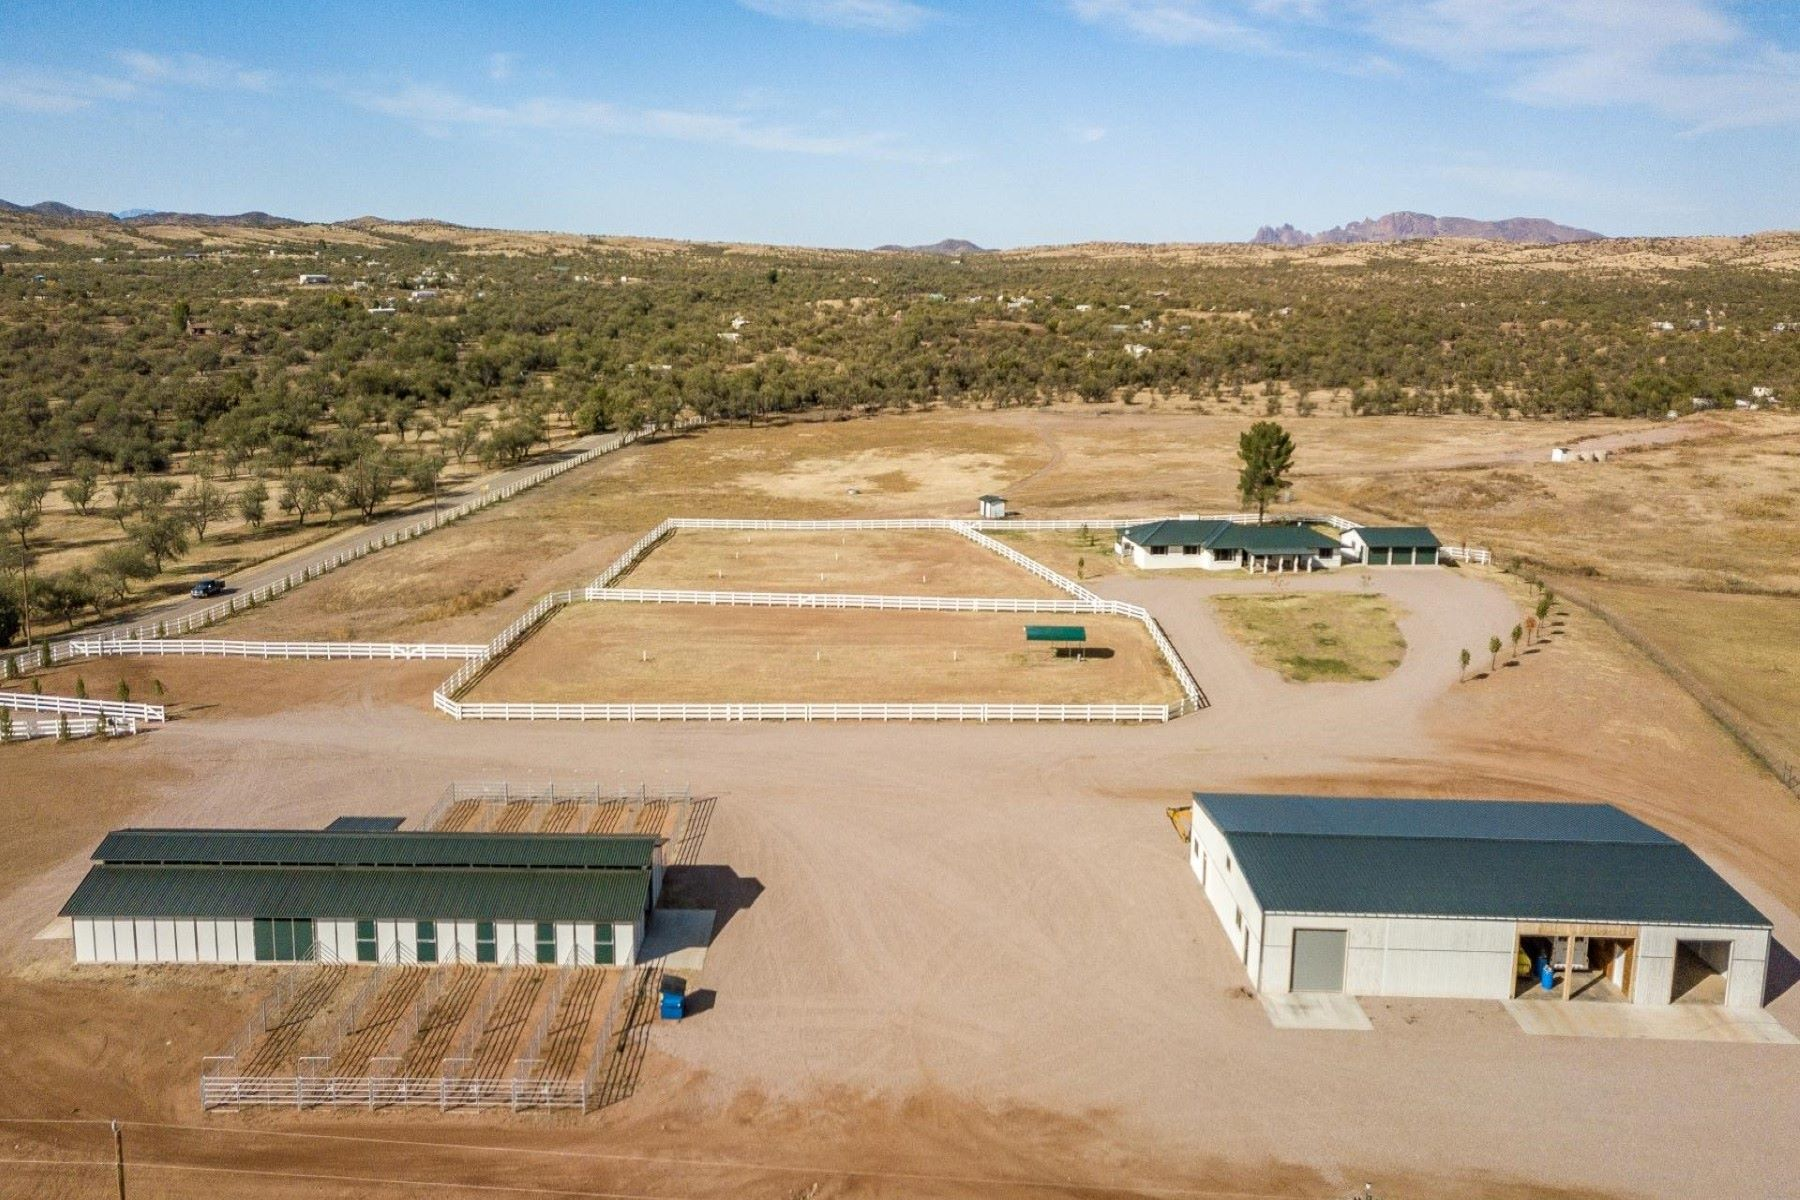 Other Residential Homes 为 销售 在 36645 Arivaca Ranch, Arivaca, AZ 85601 36645 Arivaca Ranch Arivaca, 亚利桑那州 85601 美国